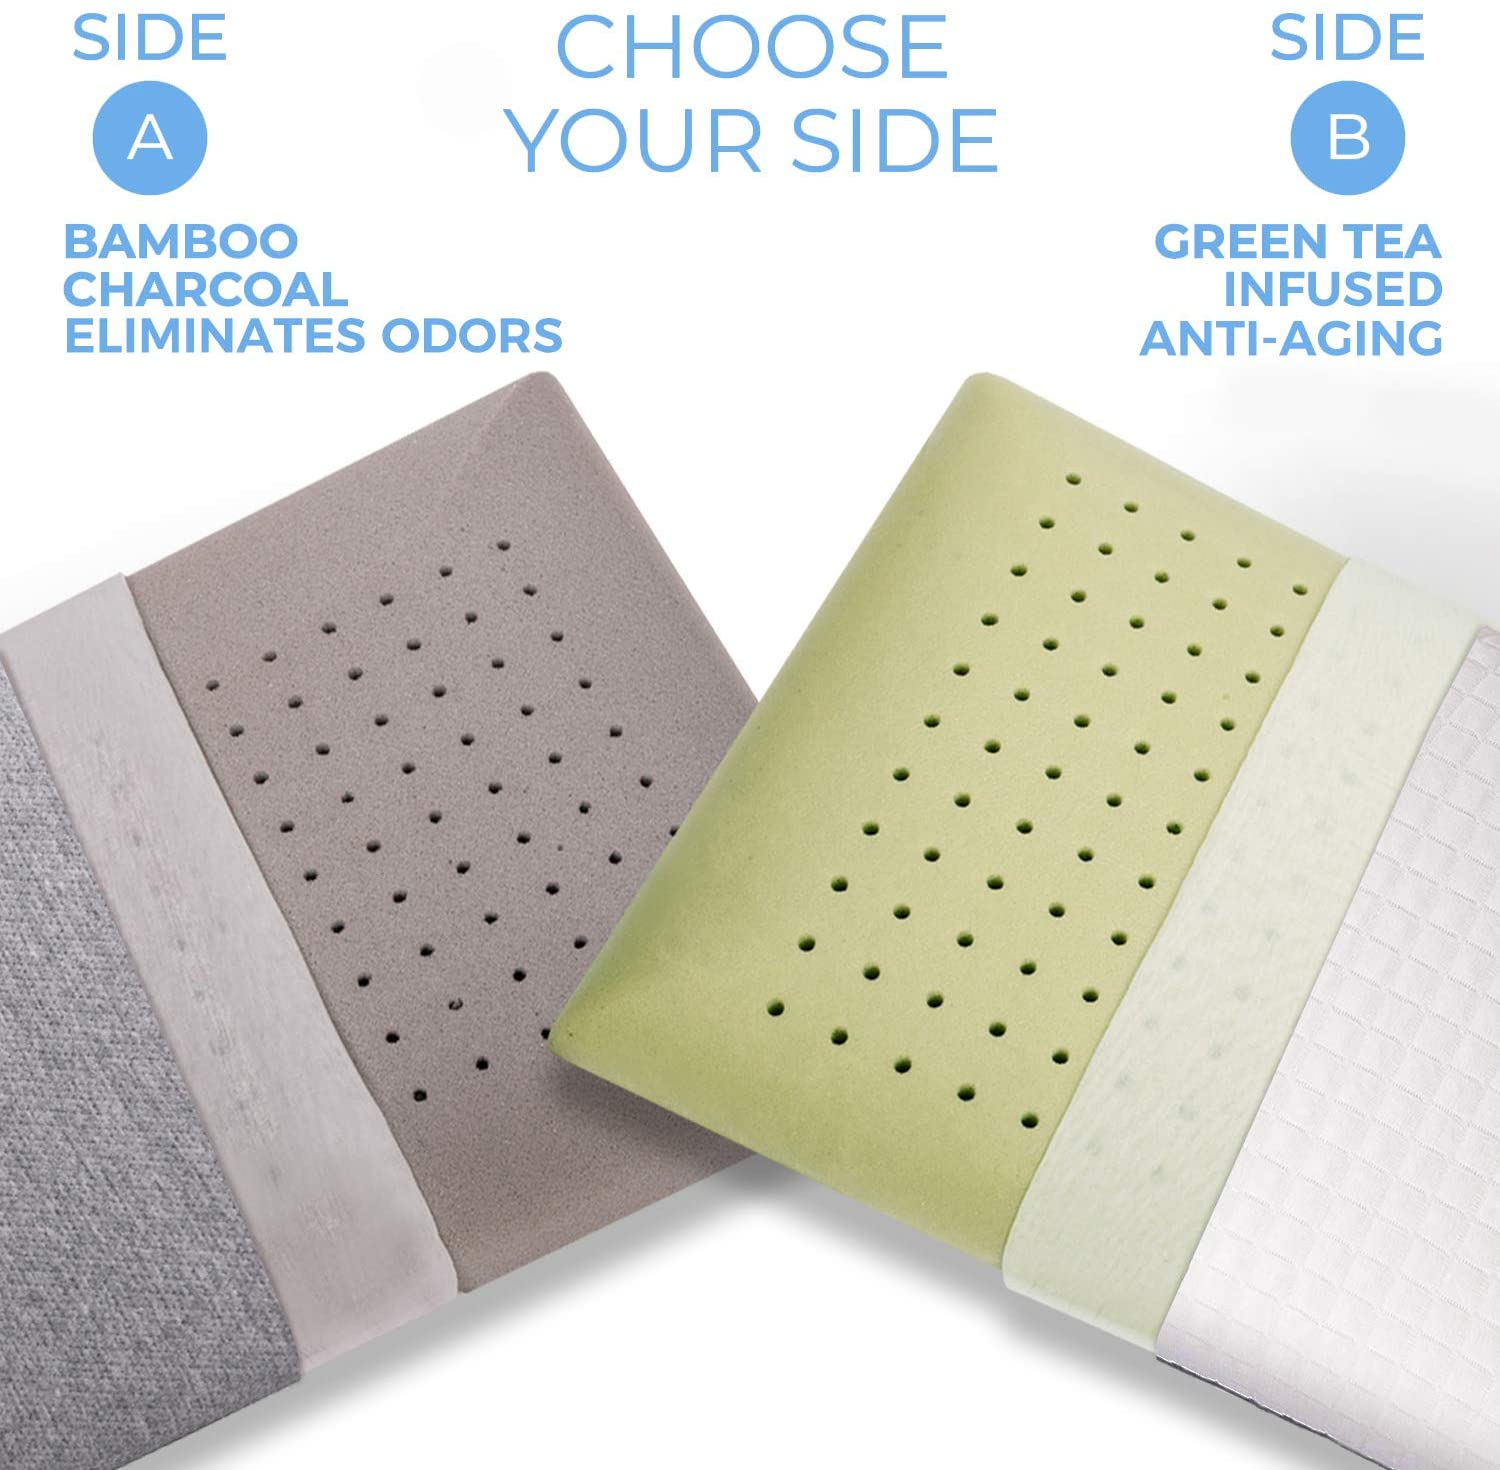 2-side charcoal pillow review